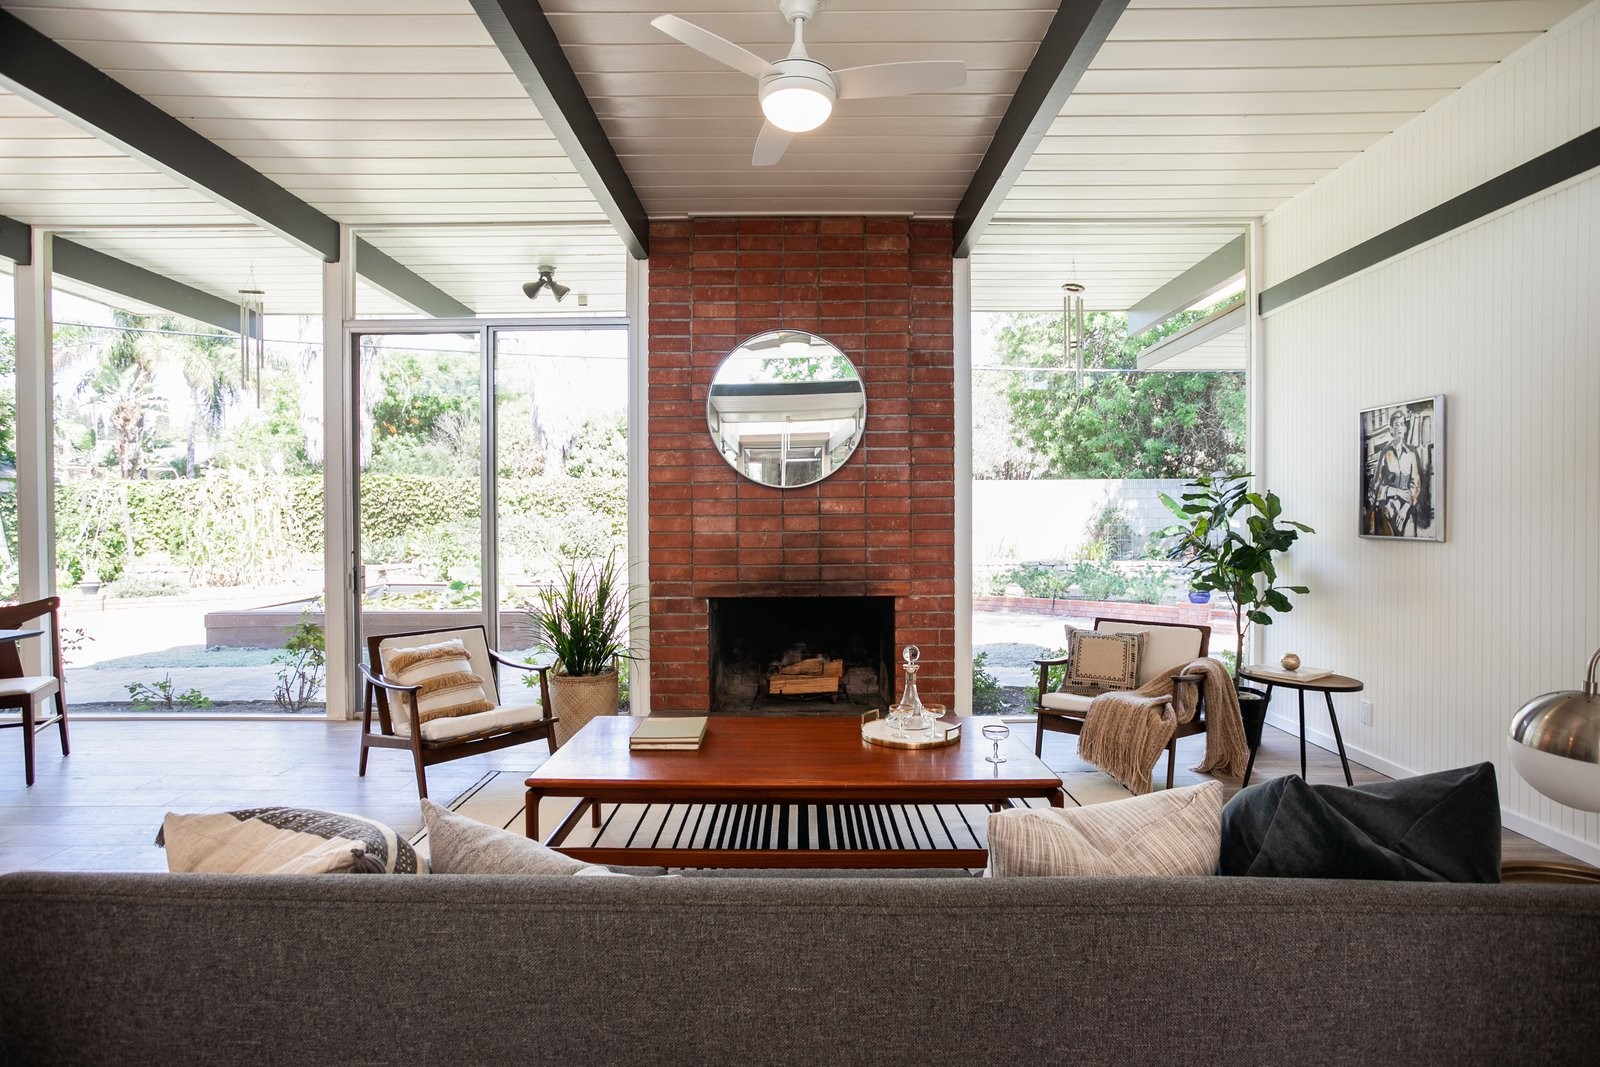 Living Room, Sofa, Coffee Tables, Chair, Ceiling Lighting, and Light Hardwood Floor A brick fireplace creates a strong centerpiece for the living space, which is bright an airy thanks to ample natural lighting.     Photo 5 of 15 in An Updated Orange County Eichler Hits the Market at $1M